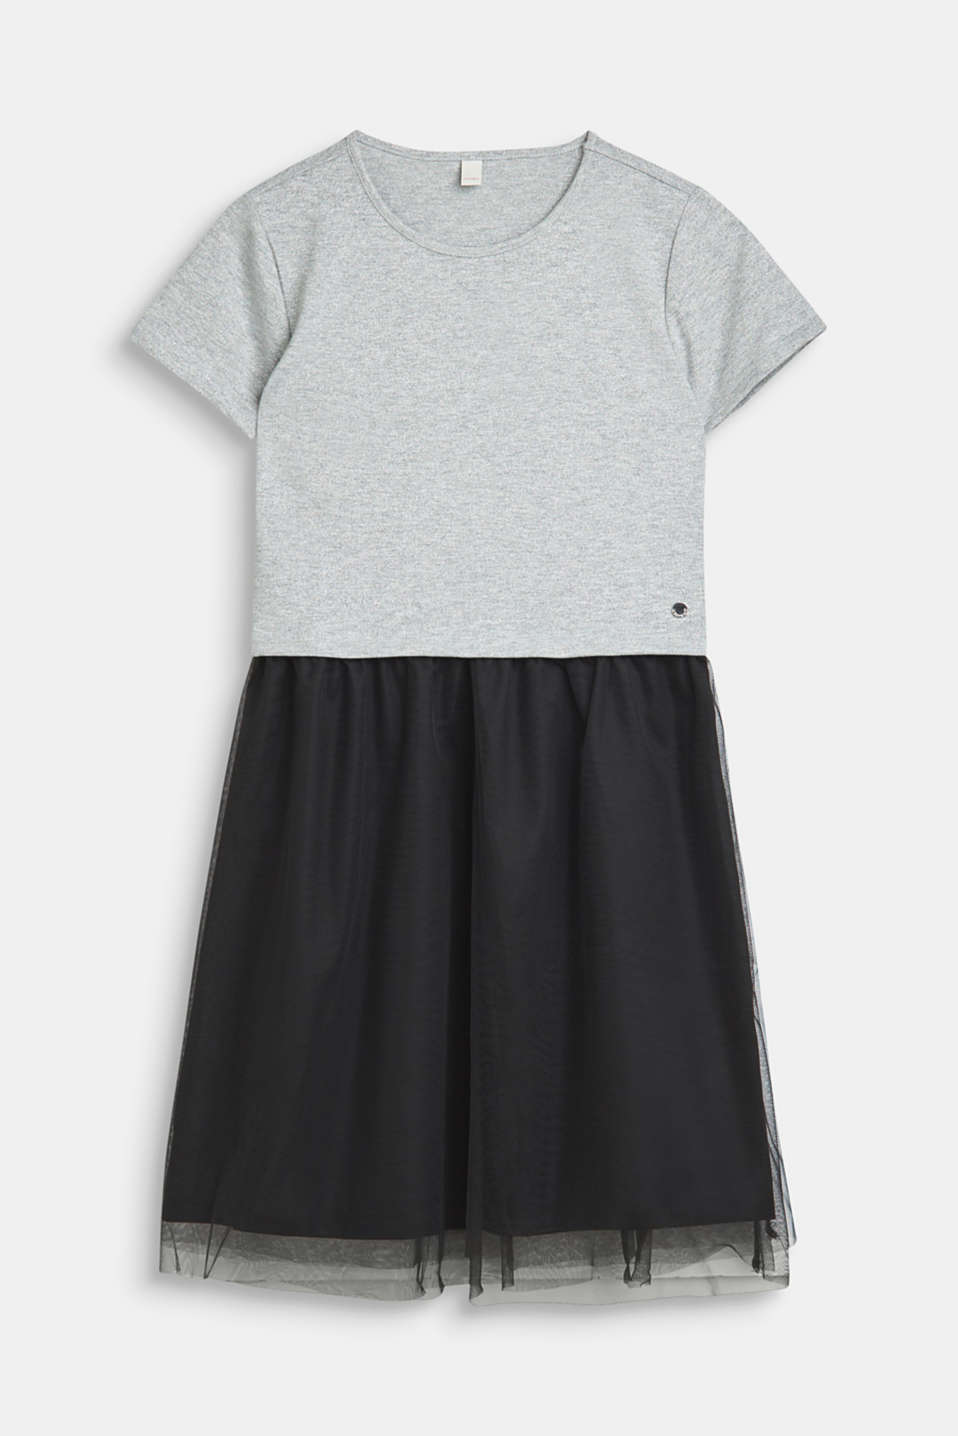 Esprit - Dress with glitter top and tulle skirt